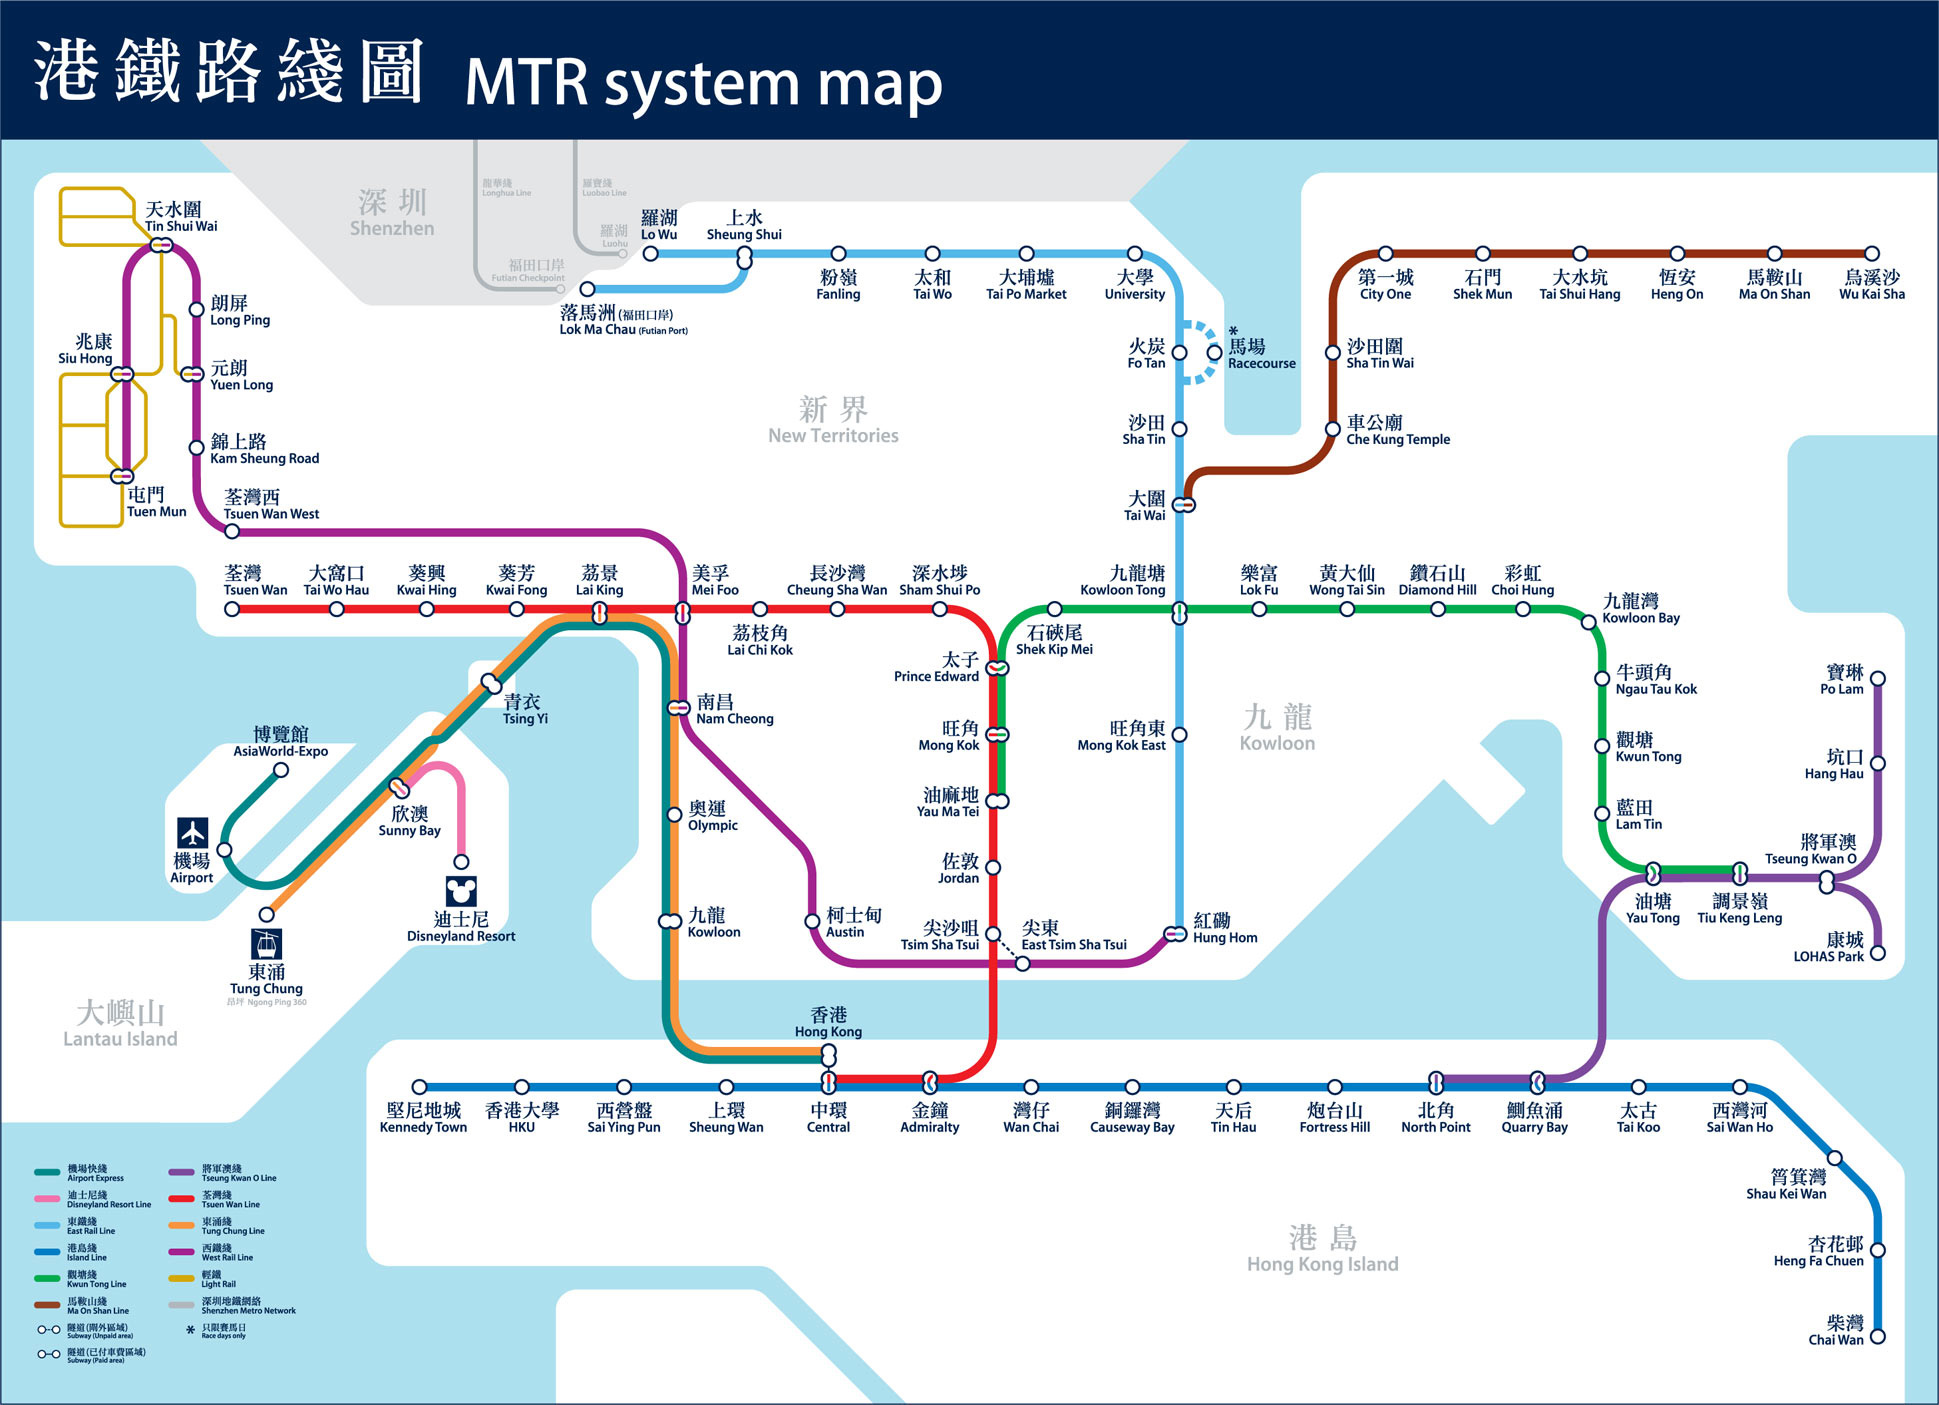 Hong kong airport archives hong kong tour guides hong kong mtr map gumiabroncs Images